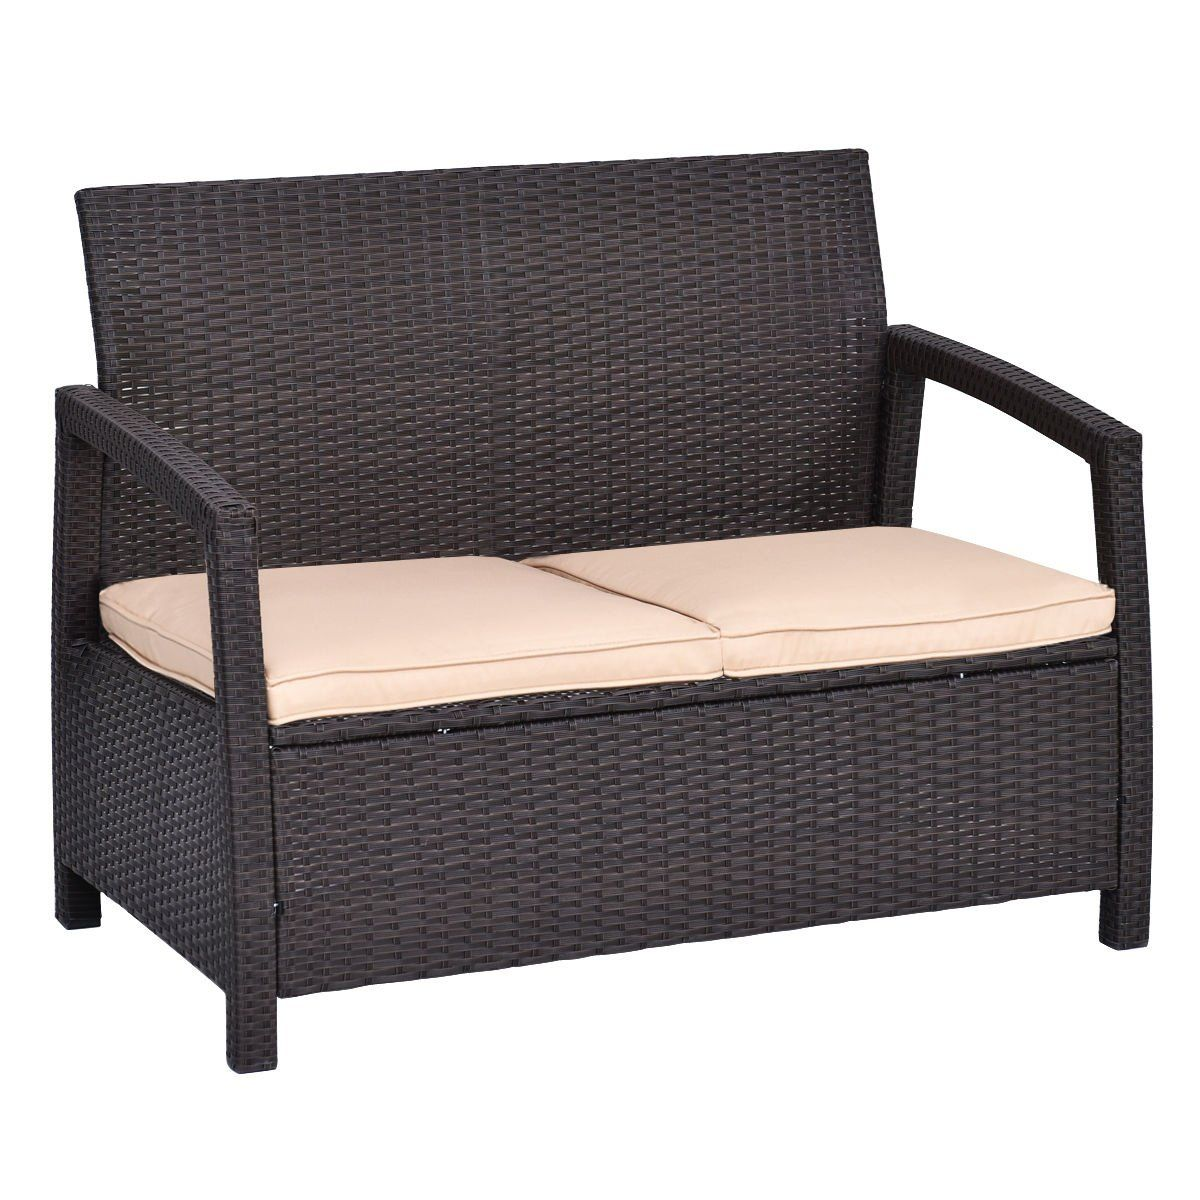 Admirable Outdoor Rattan Loveseat Bench Couch Chair With Cushions Andrewgaddart Wooden Chair Designs For Living Room Andrewgaddartcom